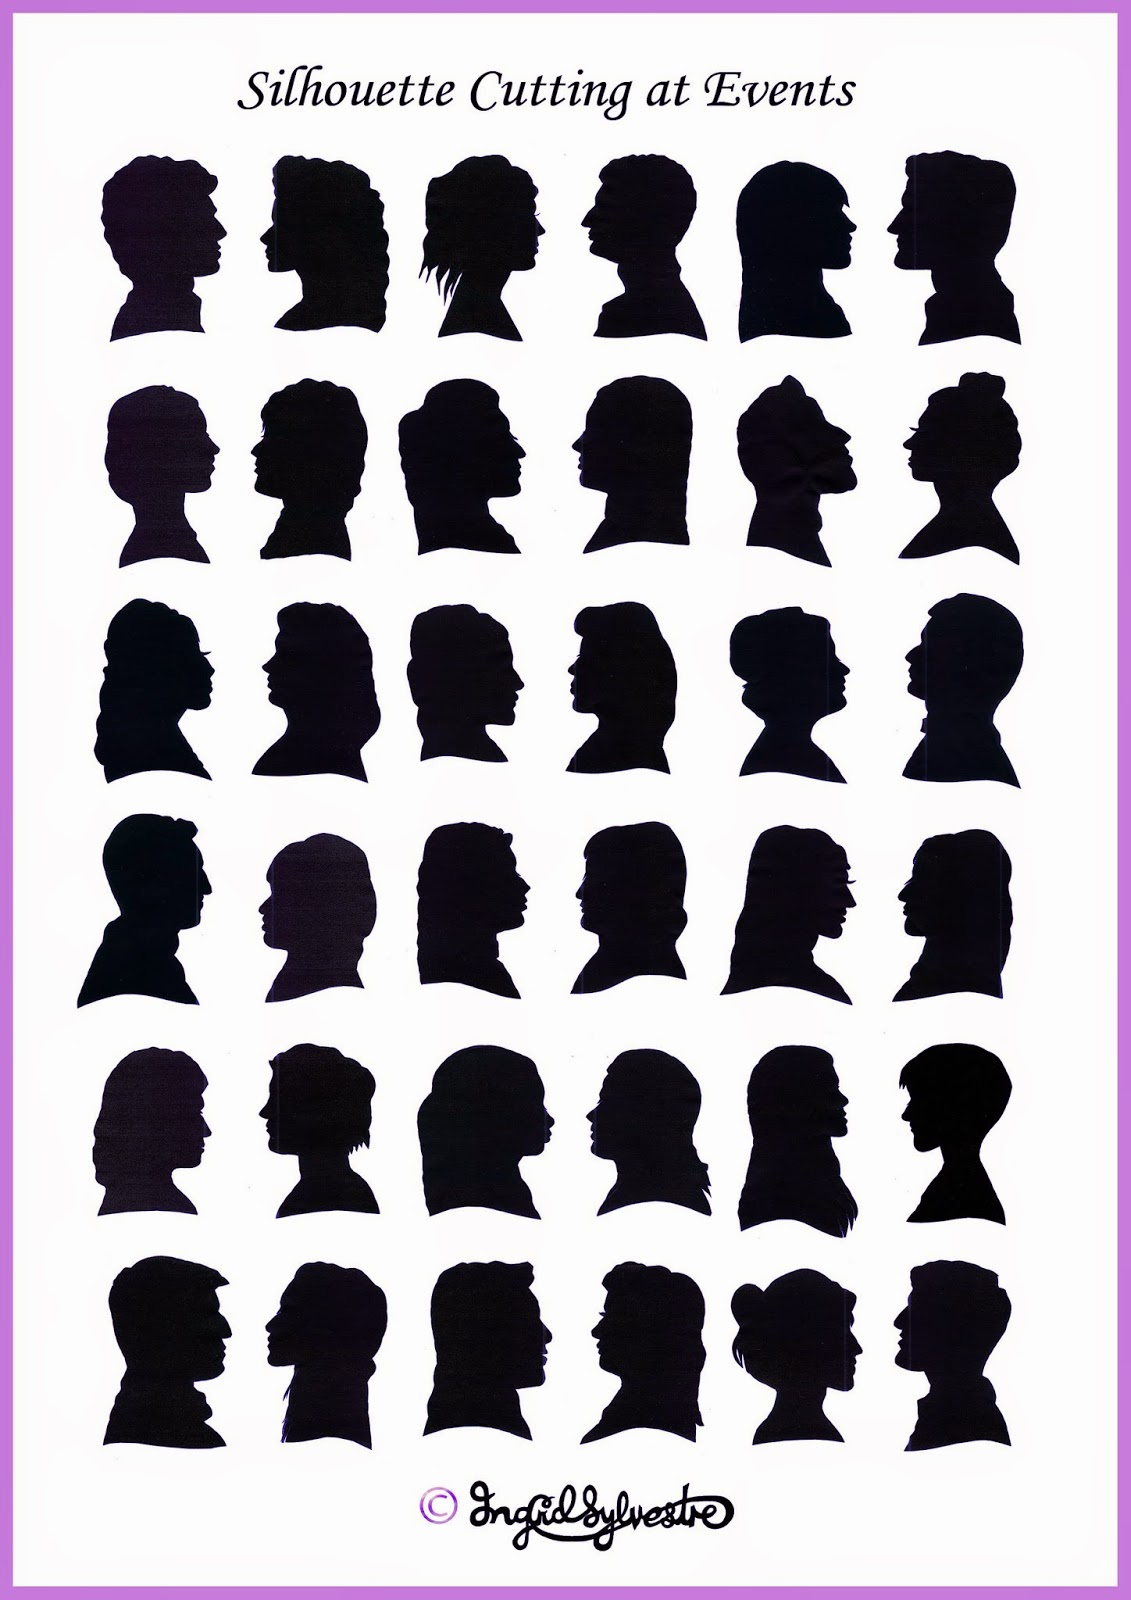 Uk Silhouette Artist Ingrid Sylvestre Wedding Entertainment North East Hand Cut Silhouettes At Weddings